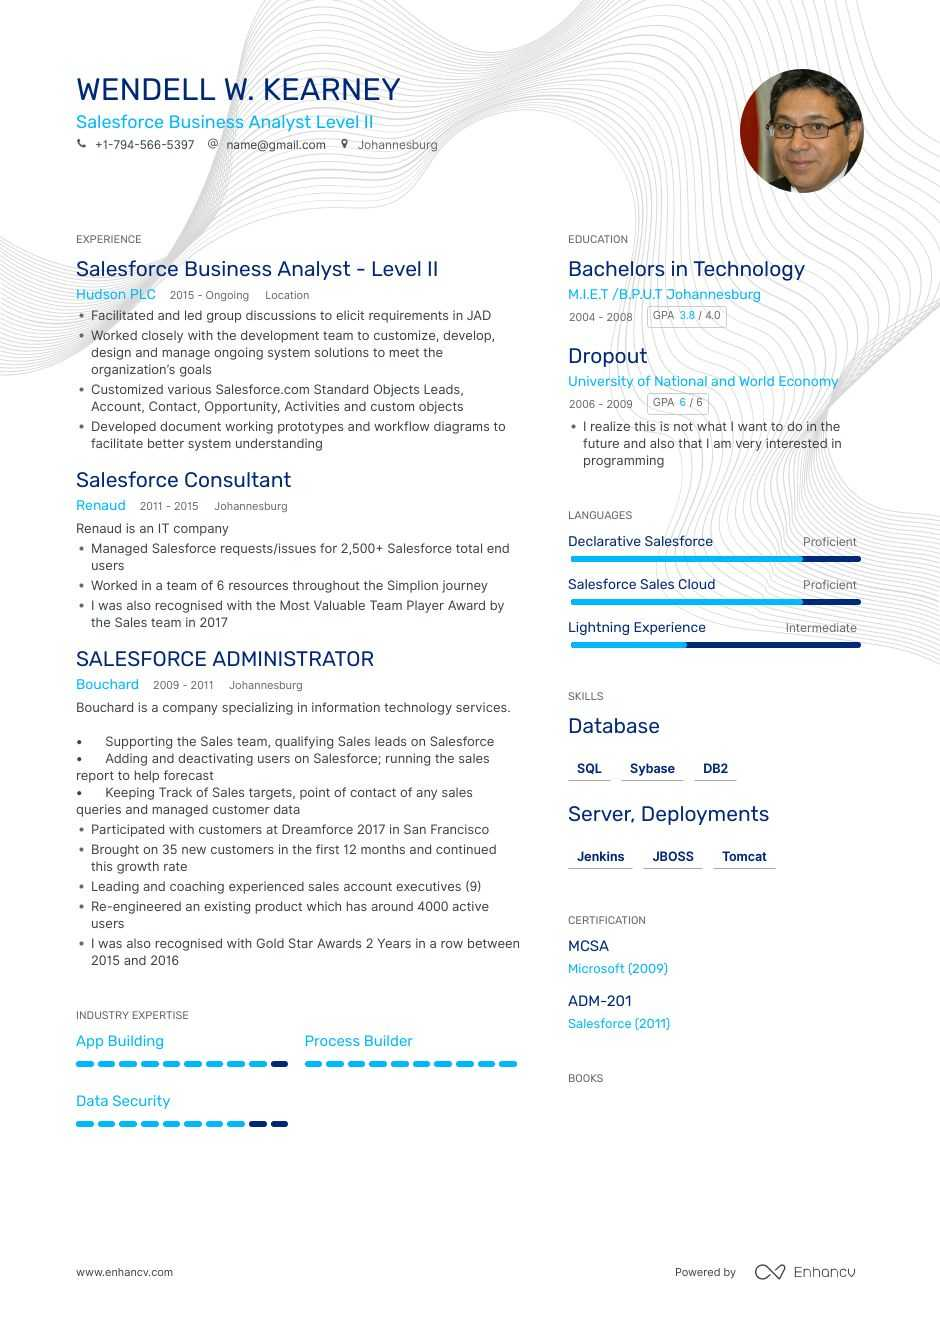 the best salesforce business analyst resume examples skills to get you hired art Resume Salesforce Business Analyst Resume